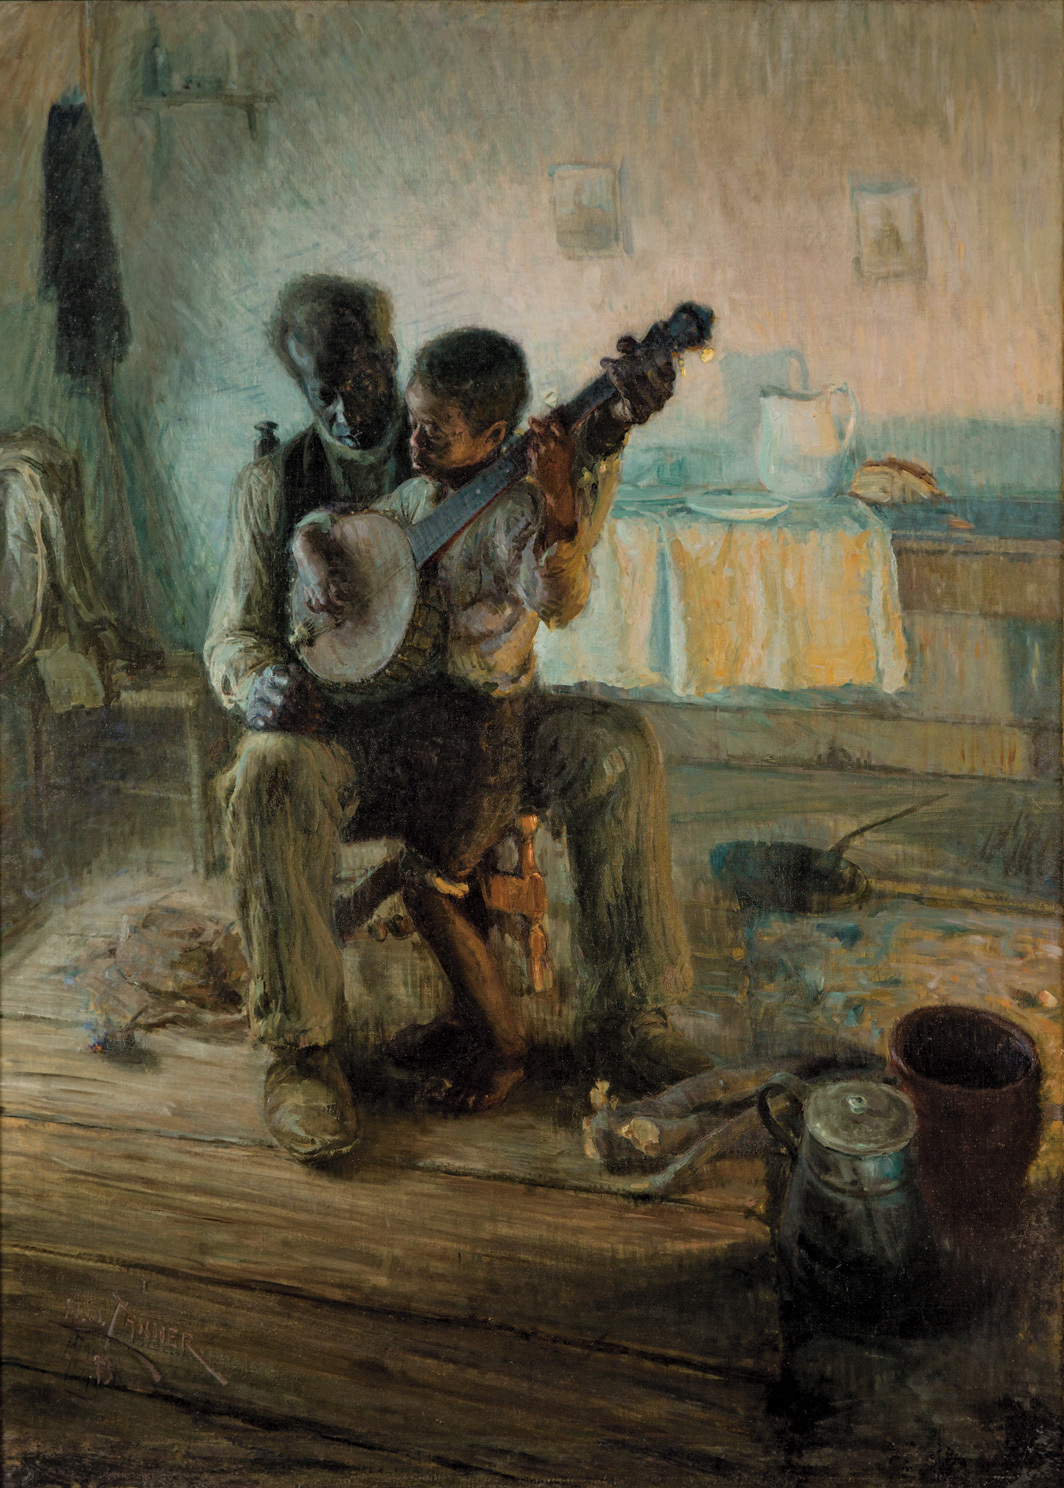 Henry Ossawa Tanner, The Banjo Lesson, 1893, oil on canvas, 49 × 35 1⁄2